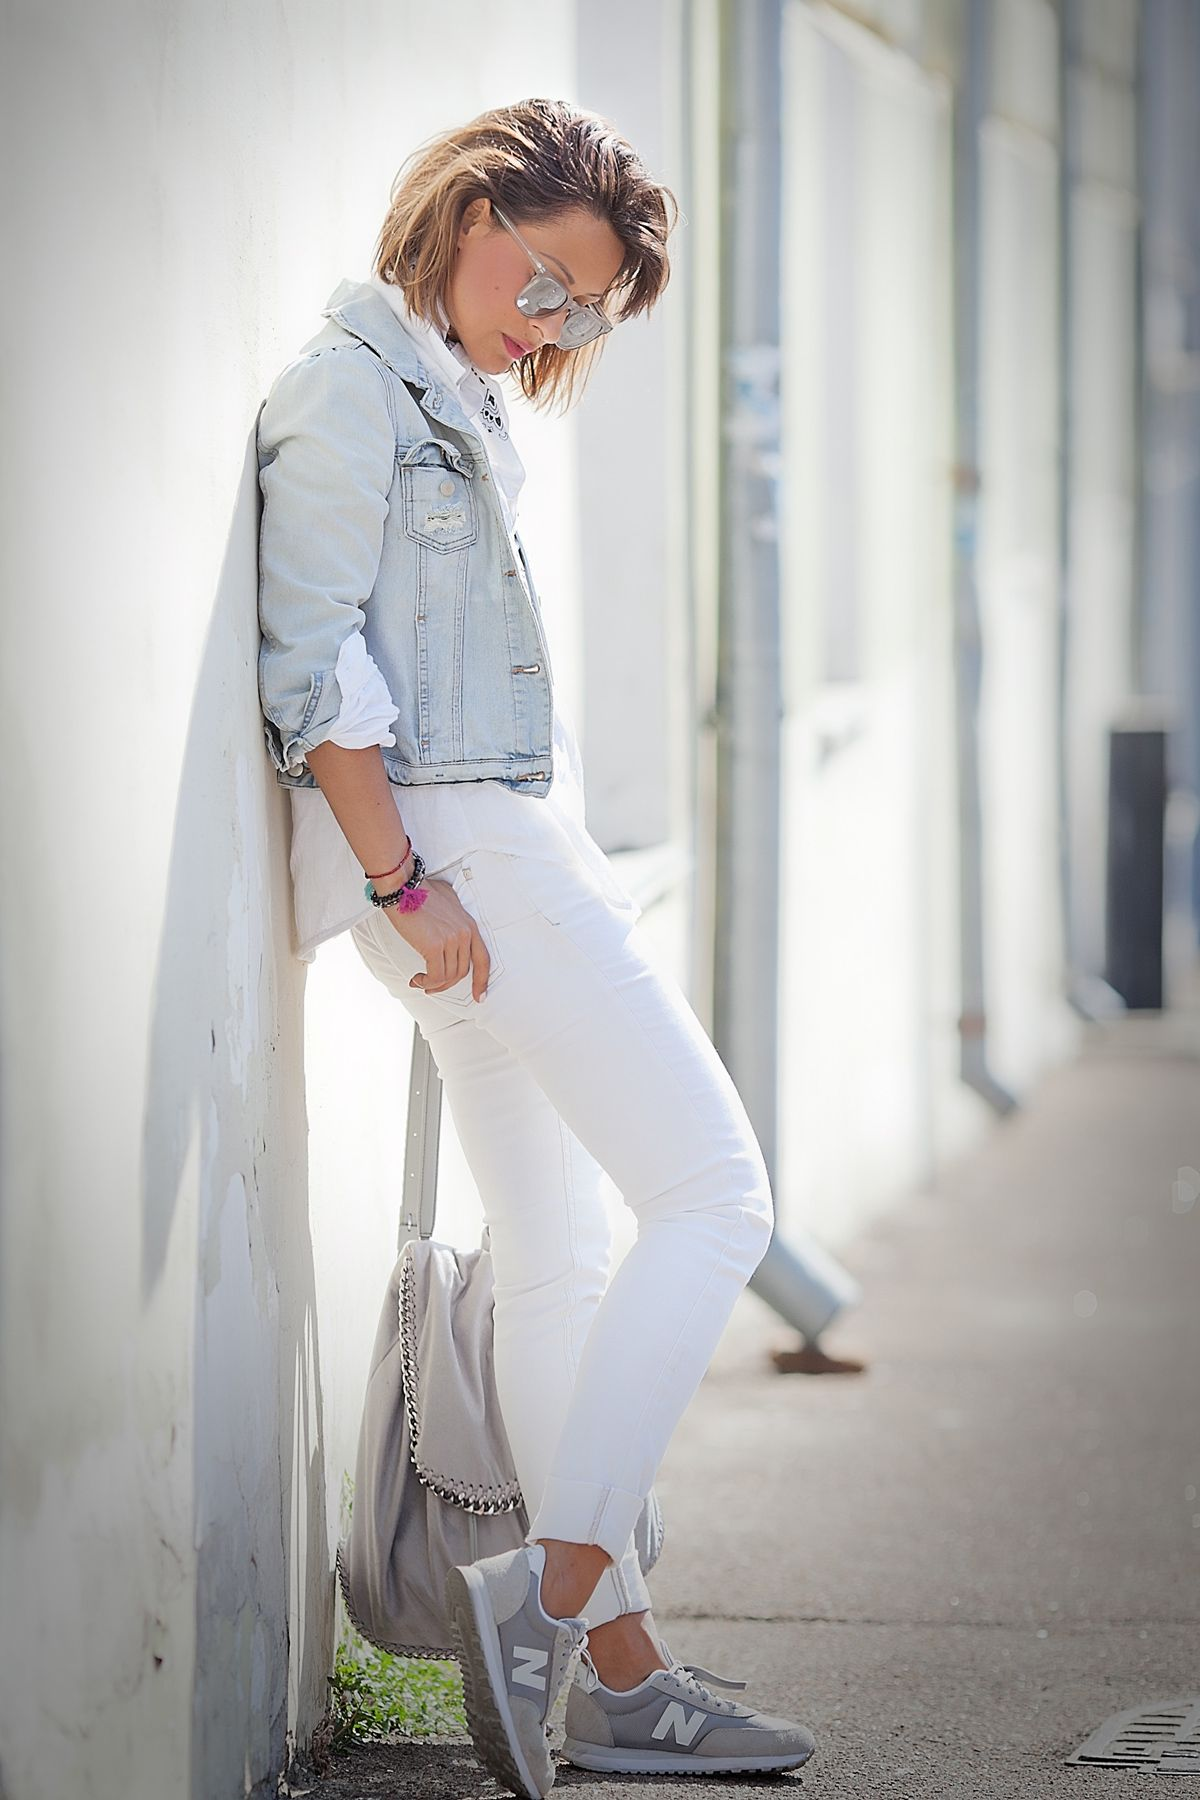 What to wear for relaxed weekend this autumn! Be inspired for comfy yet chic outfit ideas!